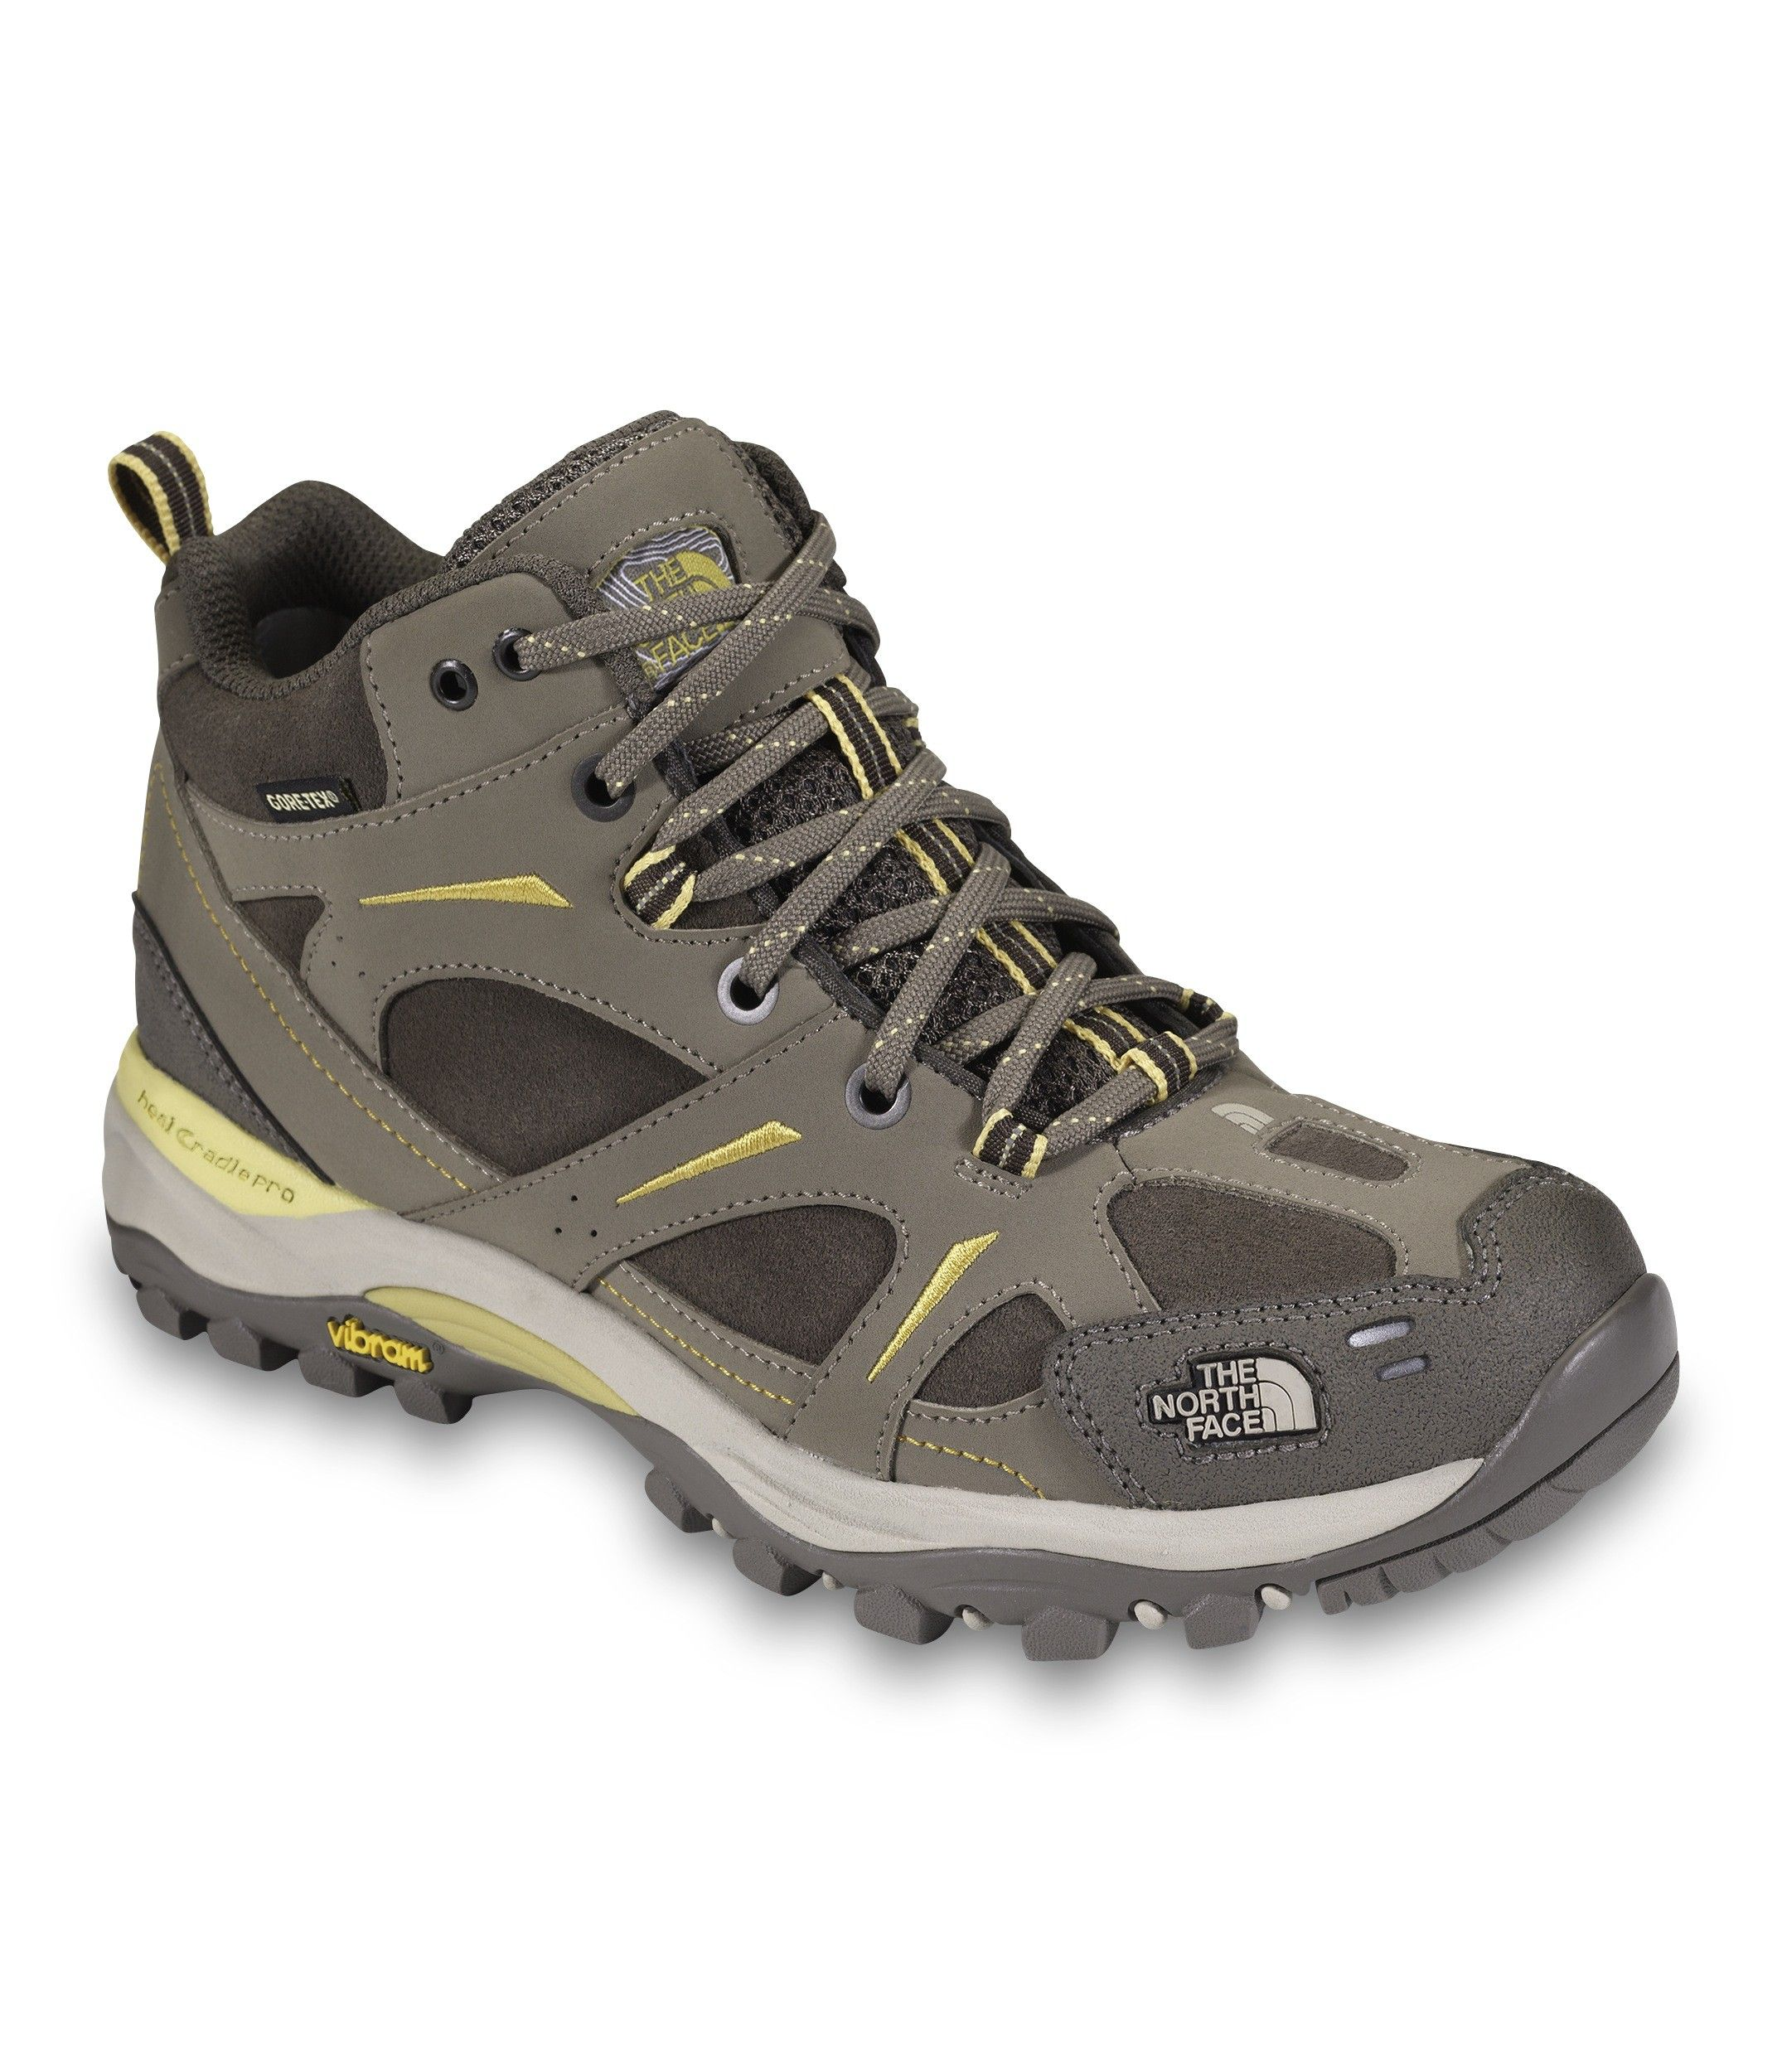 77cccbff5 The North Face Women's Hedgehog Leather Mid GTX XCR - Waterproof ...